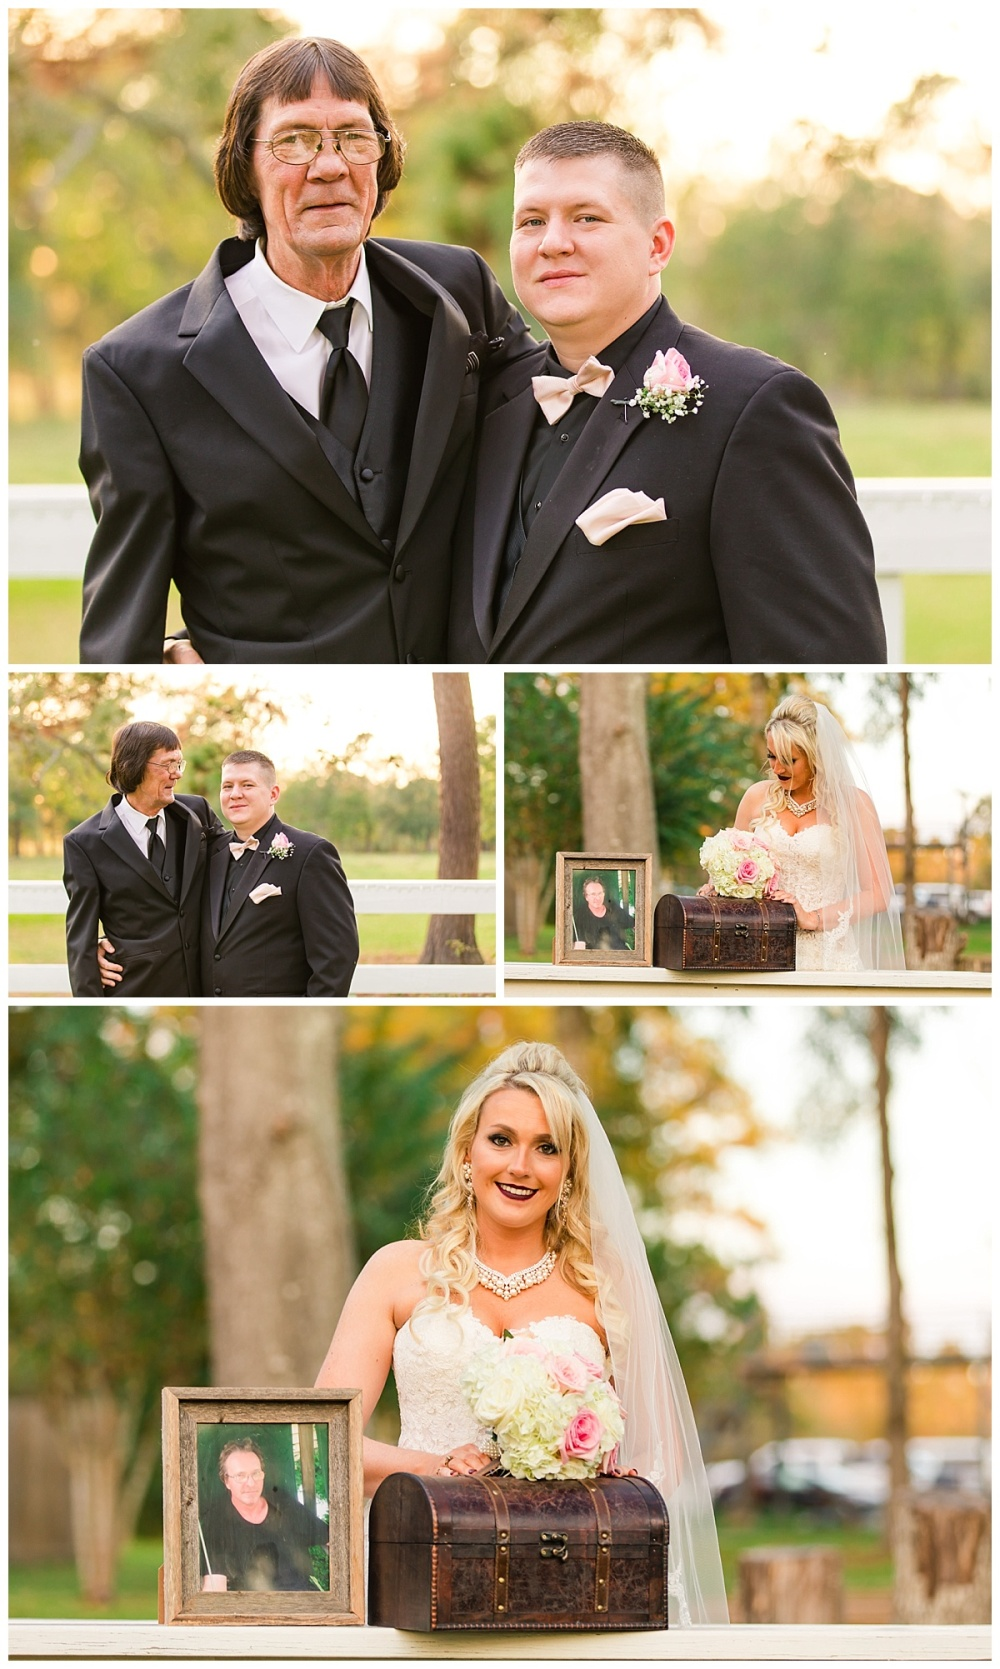 Carly-Barton-Photography-South-Texas-Wedding-Photographer-SJP-Ranch-Hardin_0046